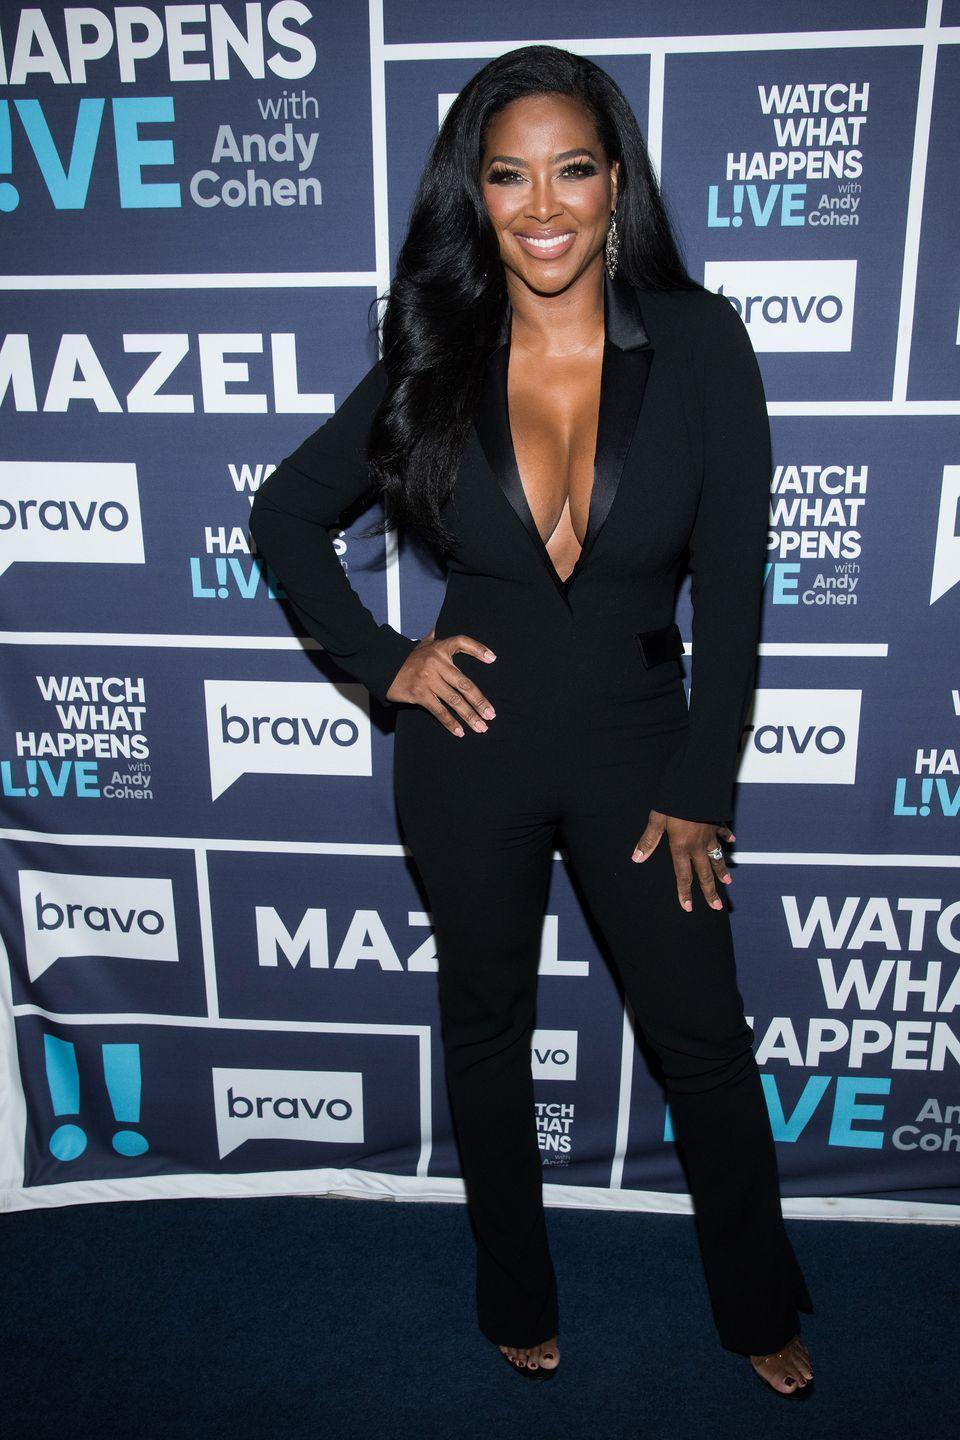 """<p>Former Miss U.S.A. Kenya Moore joined the <em>Atlanta </em>franchise in season 5 and has been a polarizing figure ever since (she was even called out as the """"shade assassin"""" by costar Cynthia Bailey!). Kenya did not appear on season 11 of <em>Atlanta</em> due to a """"messy, lengthy contract negotiation that left her and the network on opposite sides of uncrossable battle lines,"""" <a href=""""https://people.com/tv/kenya-moore-leaving-rhoa/"""" rel=""""nofollow noopener"""" target=""""_blank"""" data-ylk=""""slk:People"""" class=""""link rapid-noclick-resp""""><em>People</em></a> reported. She returned for the most recent season, but it is not yet confirmed if she will maintain her status as a Housewife in the upcoming season 13.</p>"""